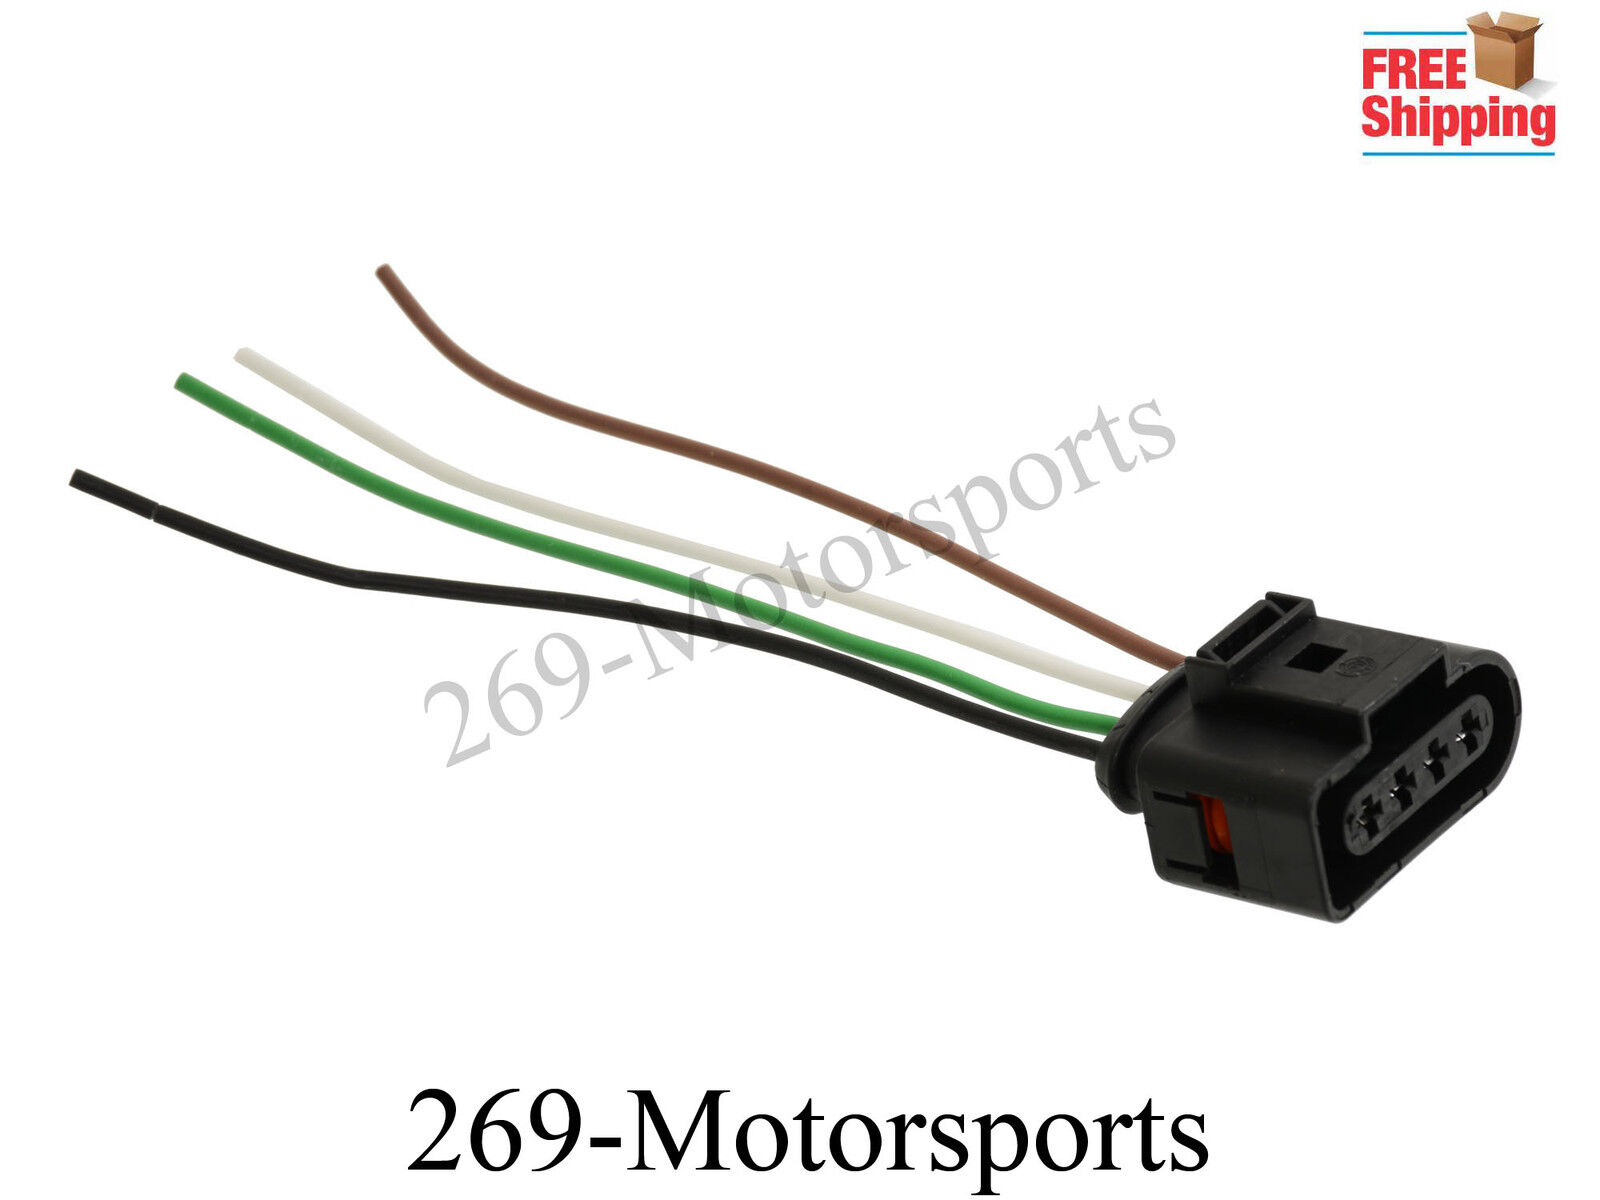 Ignition Coil Connector Repair Harness Plug Wiring Fits 4 Audi Vw Connectors 1 Of 4free Shipping Jetta Passat